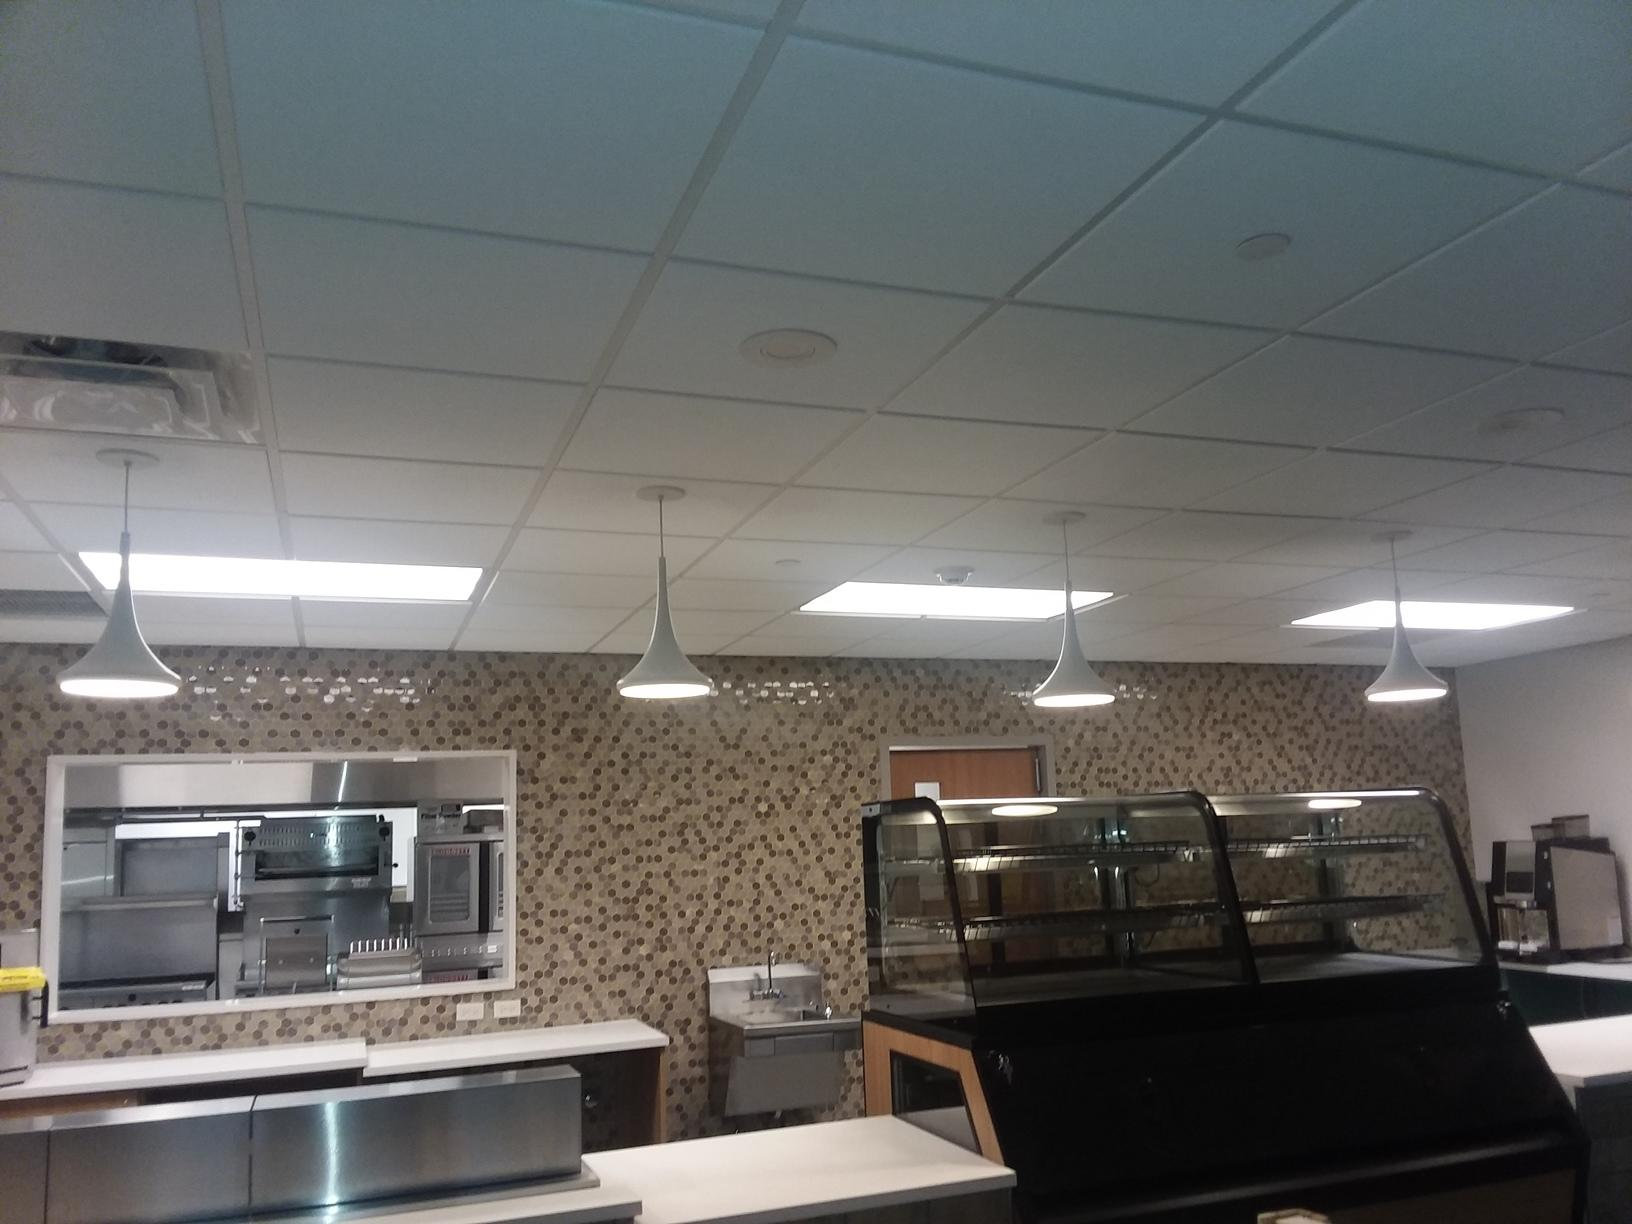 Newark adds cafe/bakery, ice cream and print shops' - After Photo